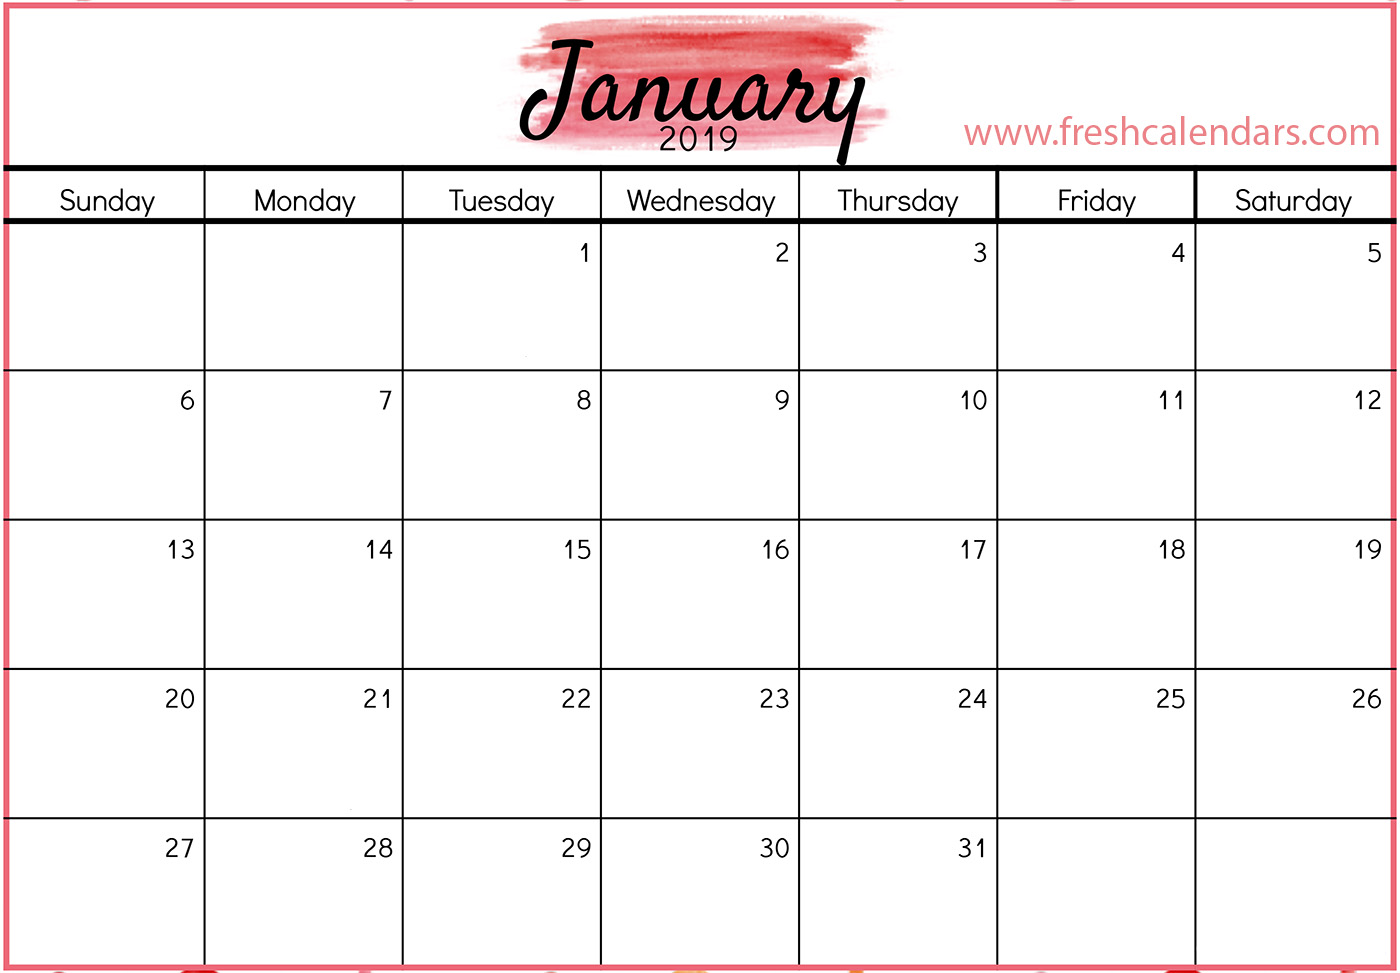 January 2019 Fill In Calendar January 2019 Calendar Printable   Fresh Calendars